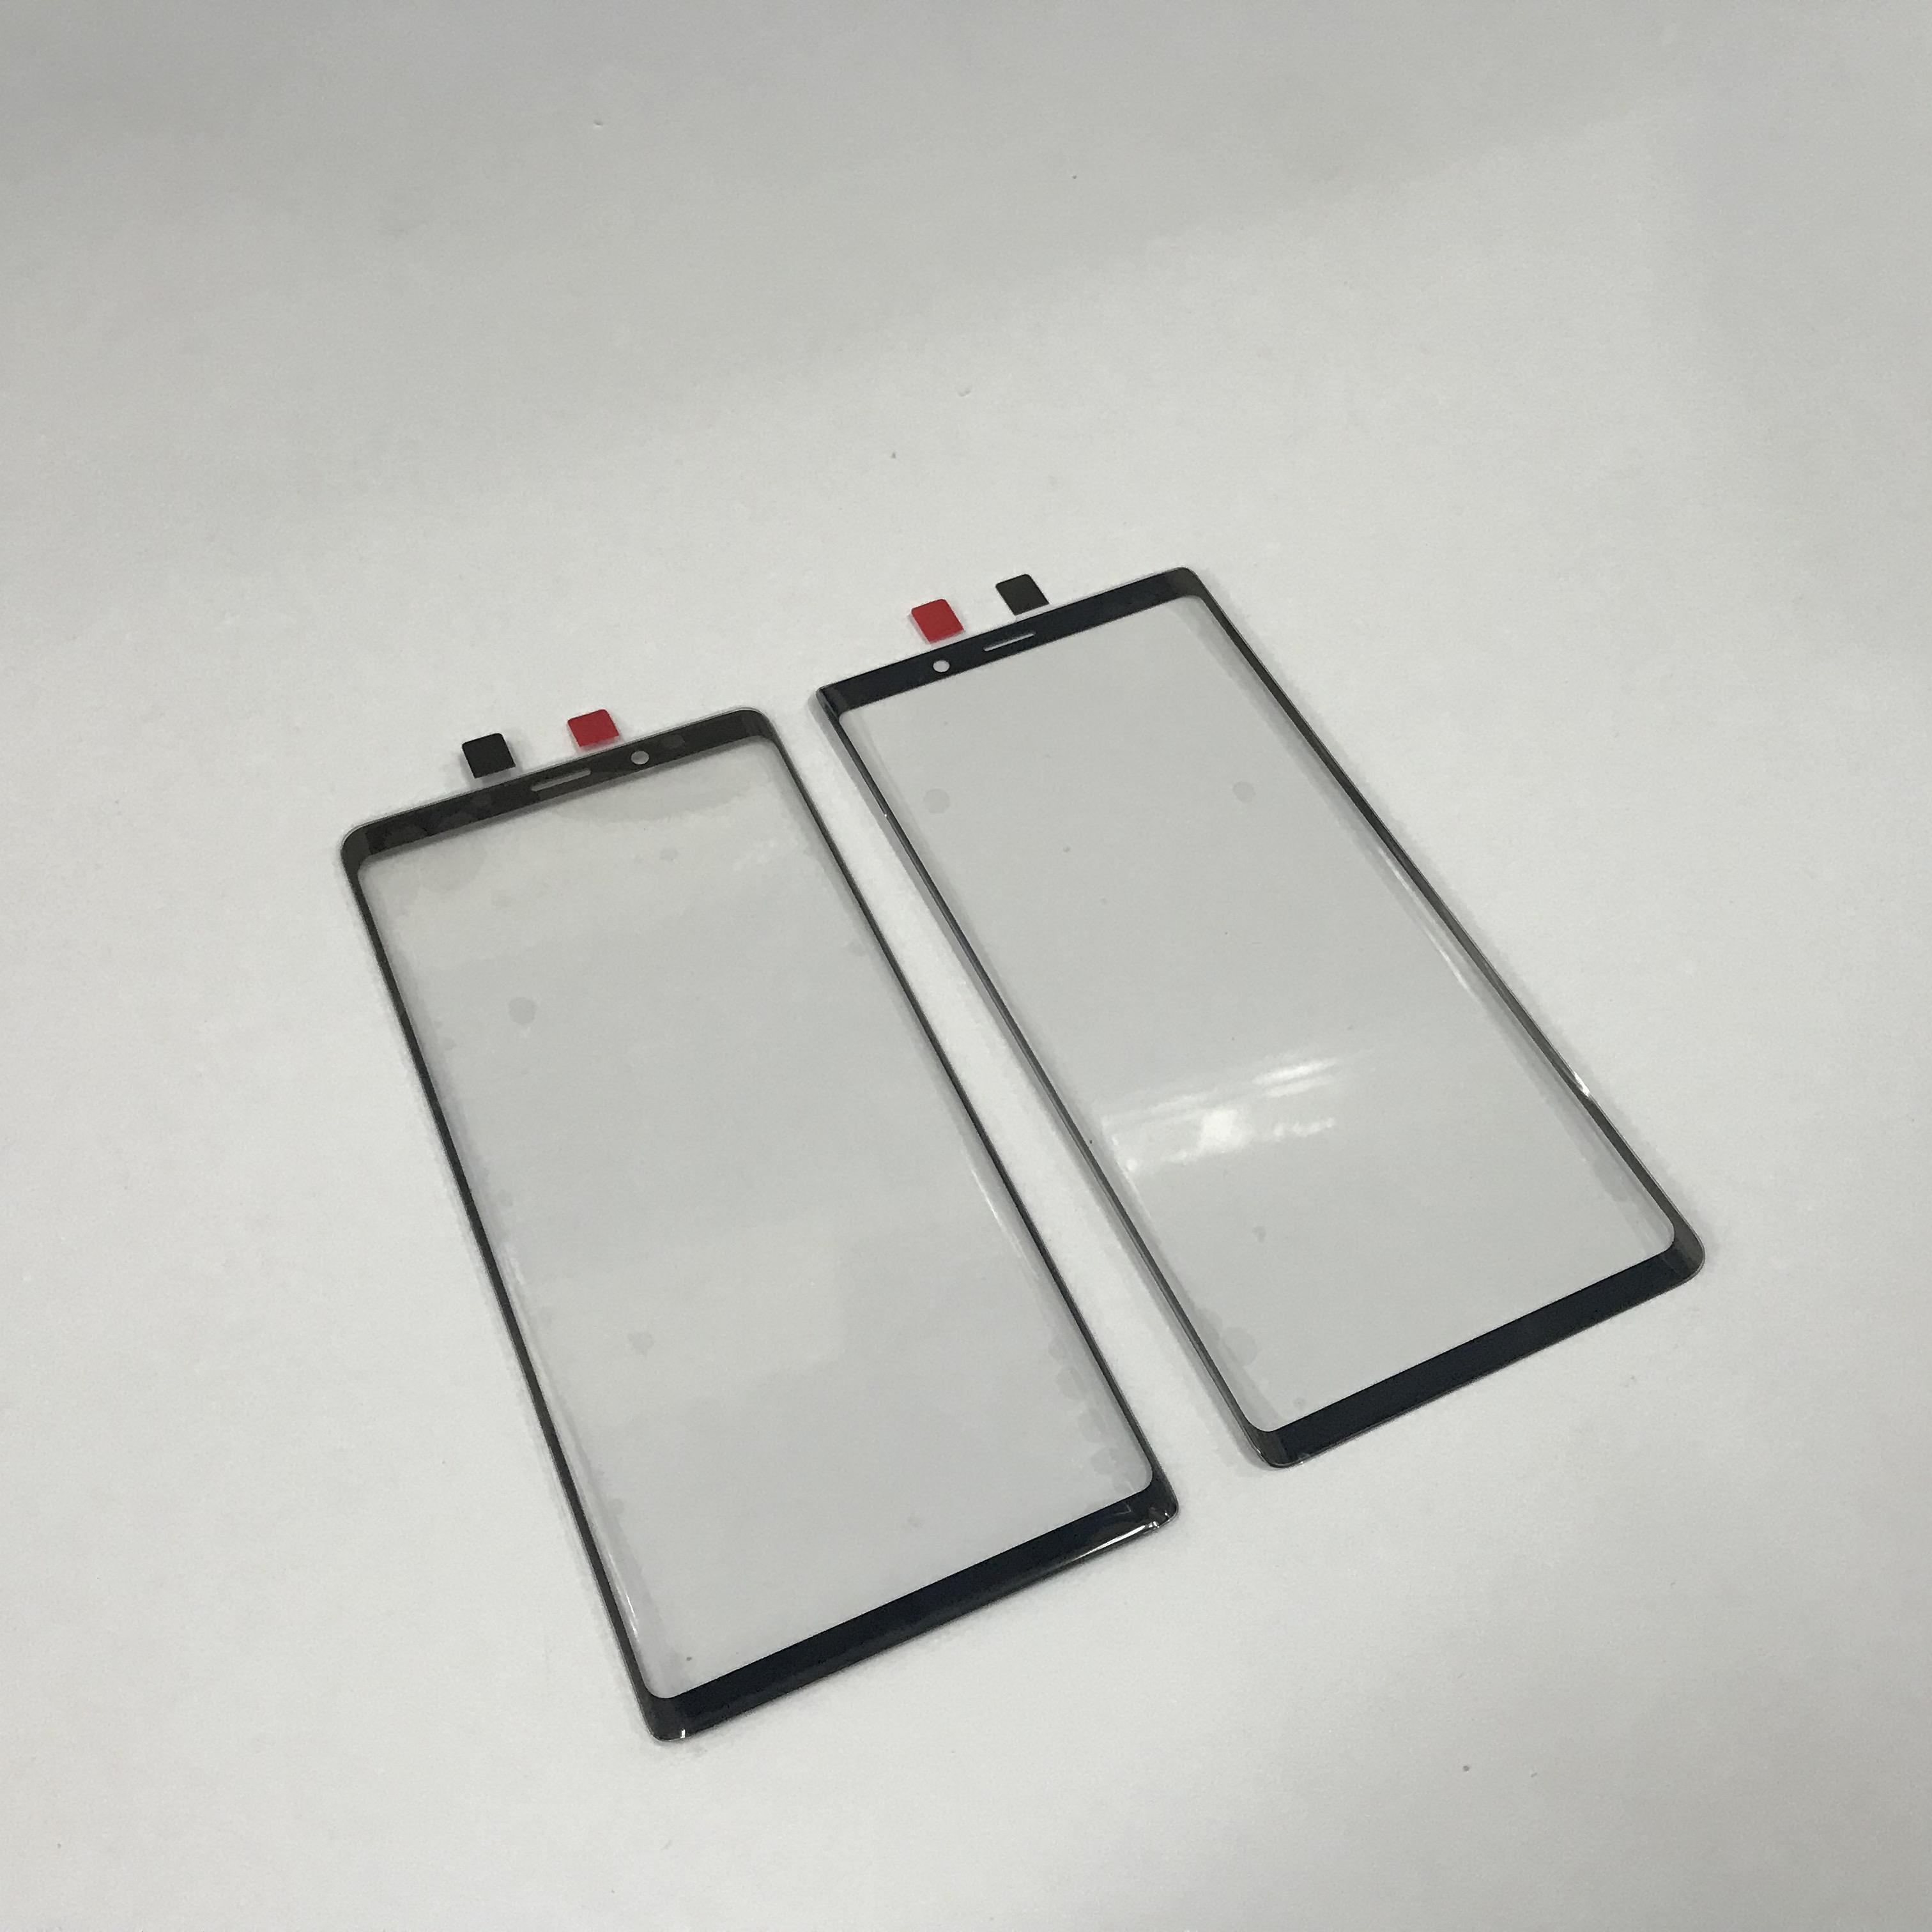 100% Original New Front Outer Glass Lens Cover Replacement For Samsung Galaxy Note 9 N960 N960F